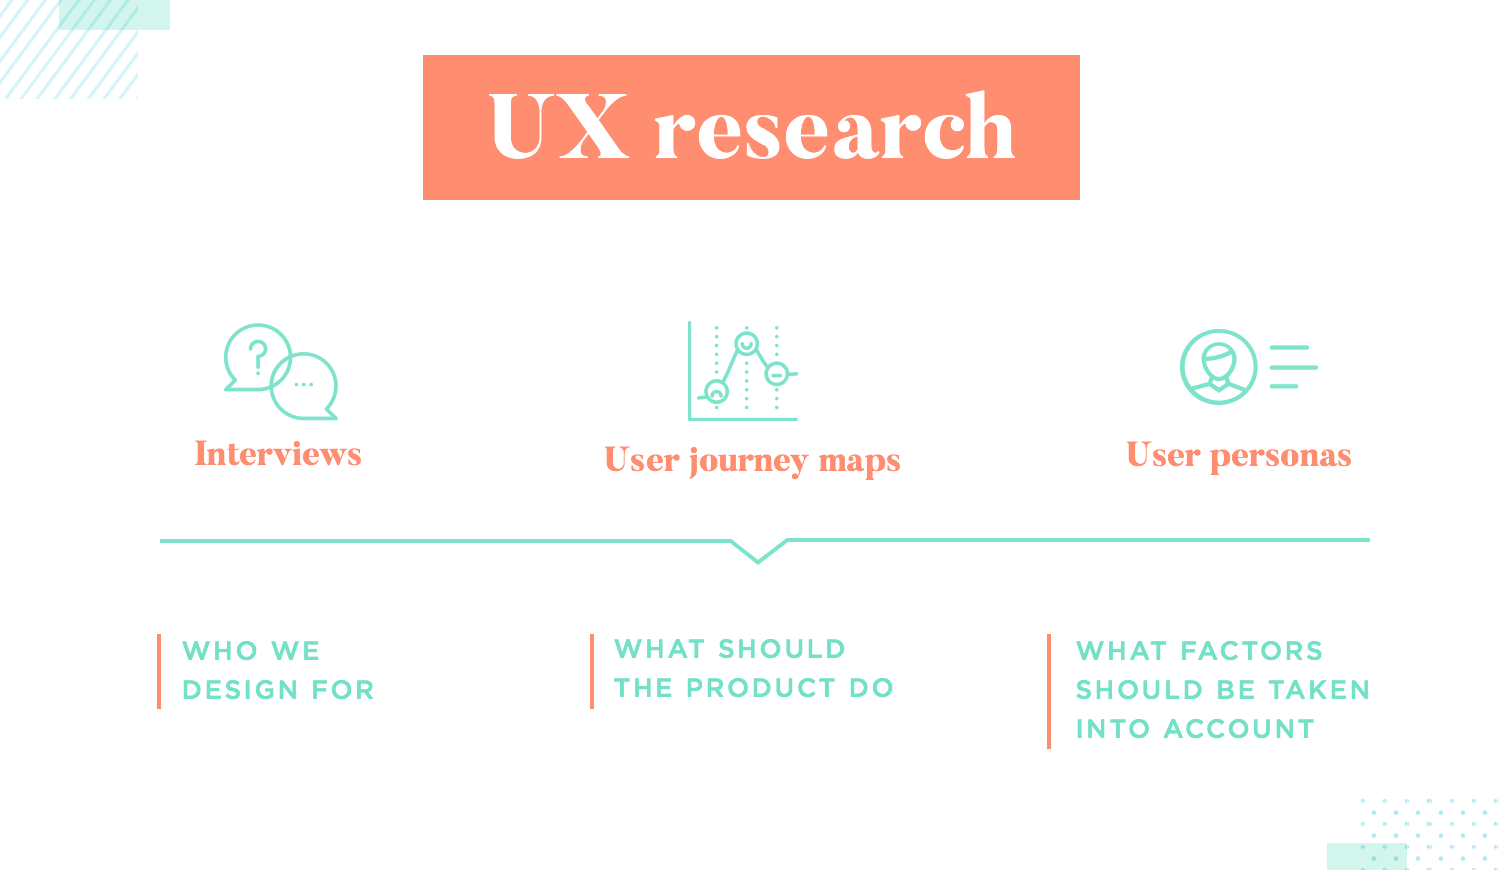 ux research as task of ux design for workflow